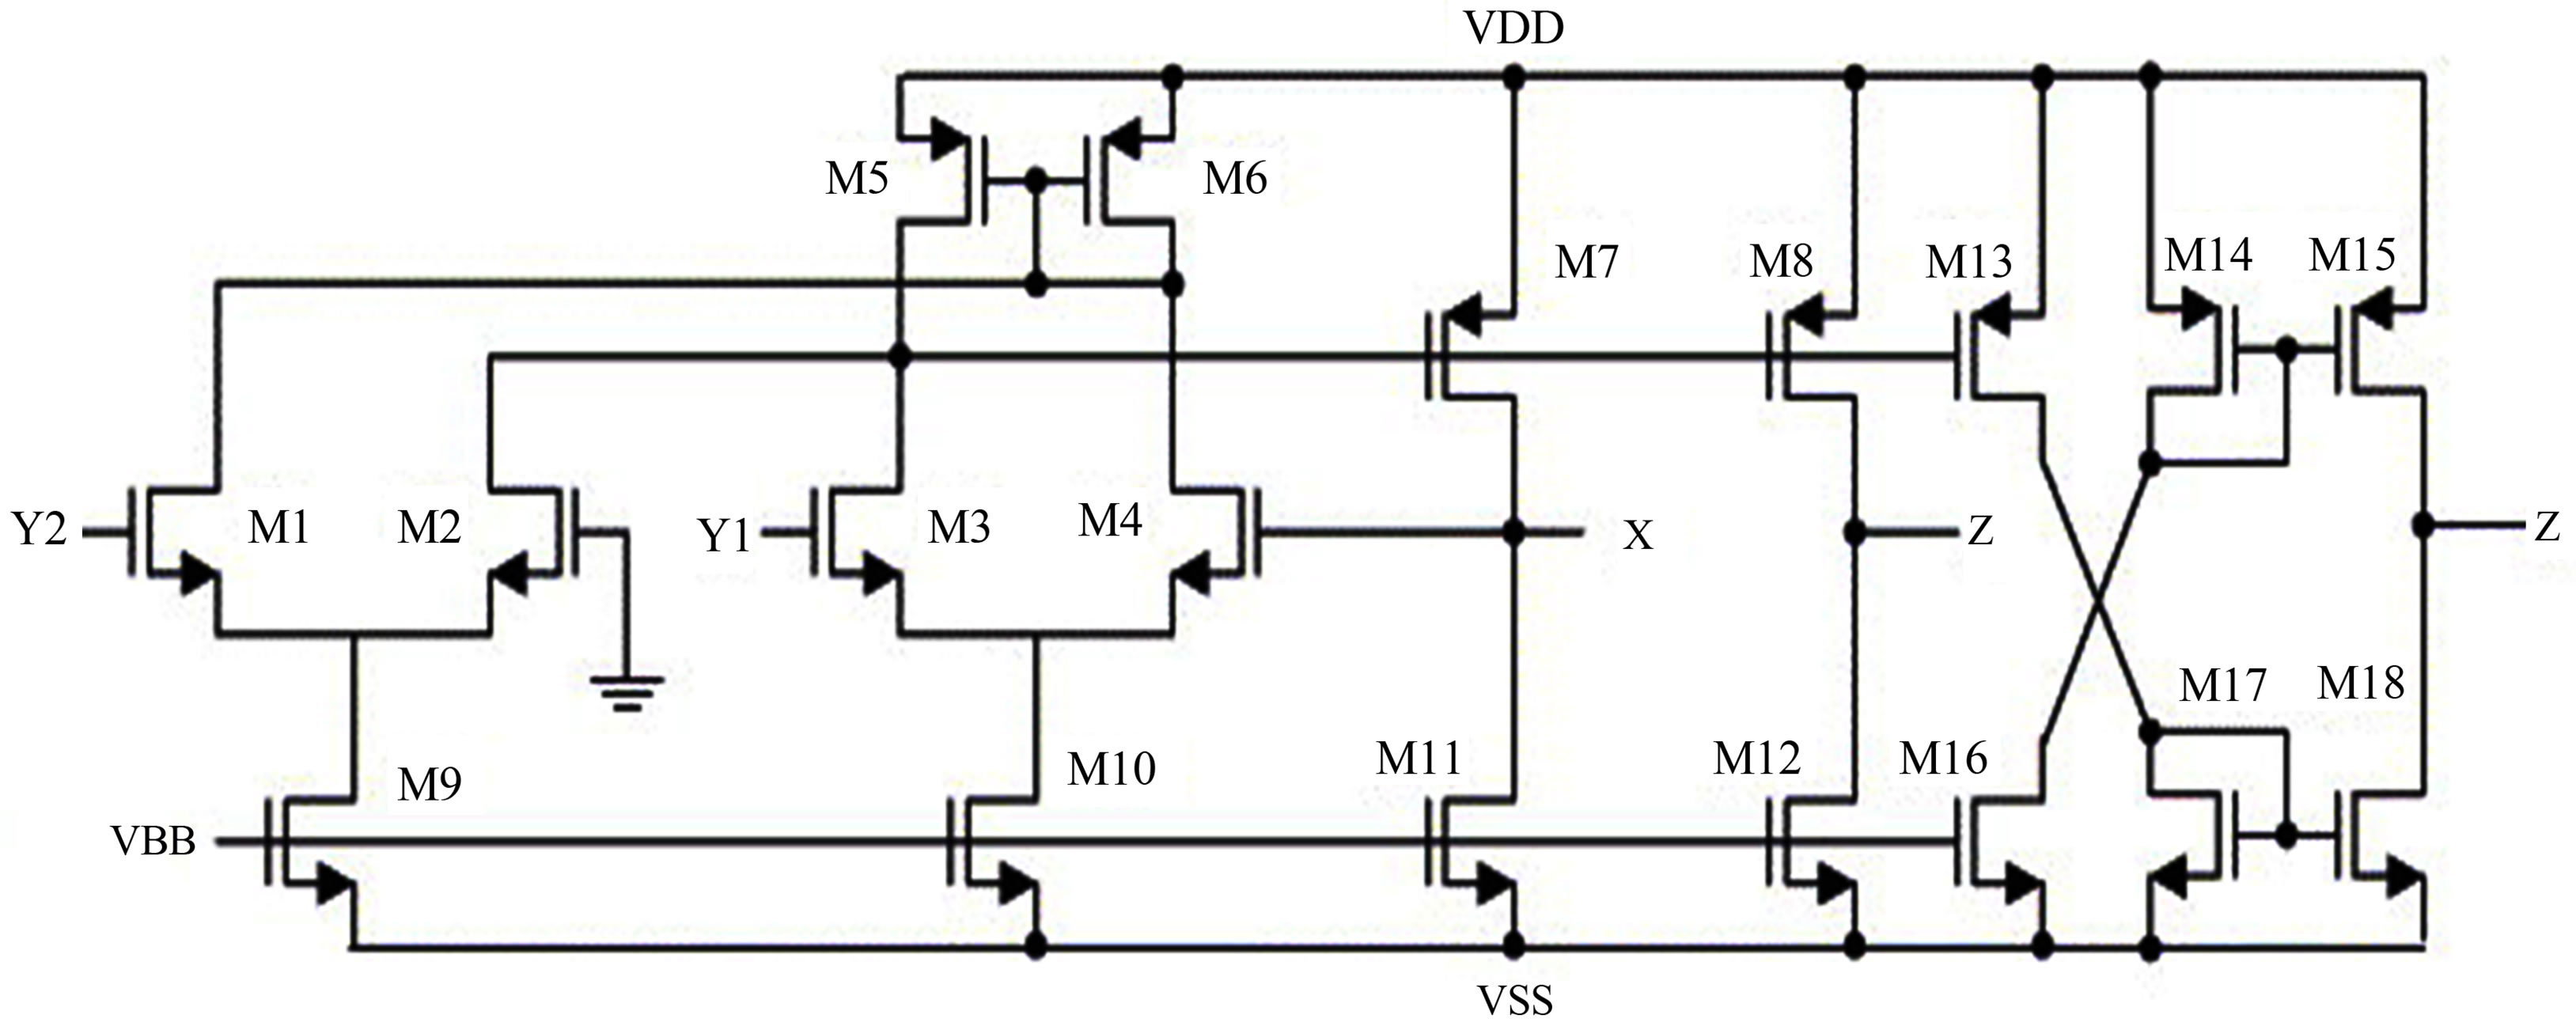 Dual Dvcc Based Voltage Mode Digitally Programmable